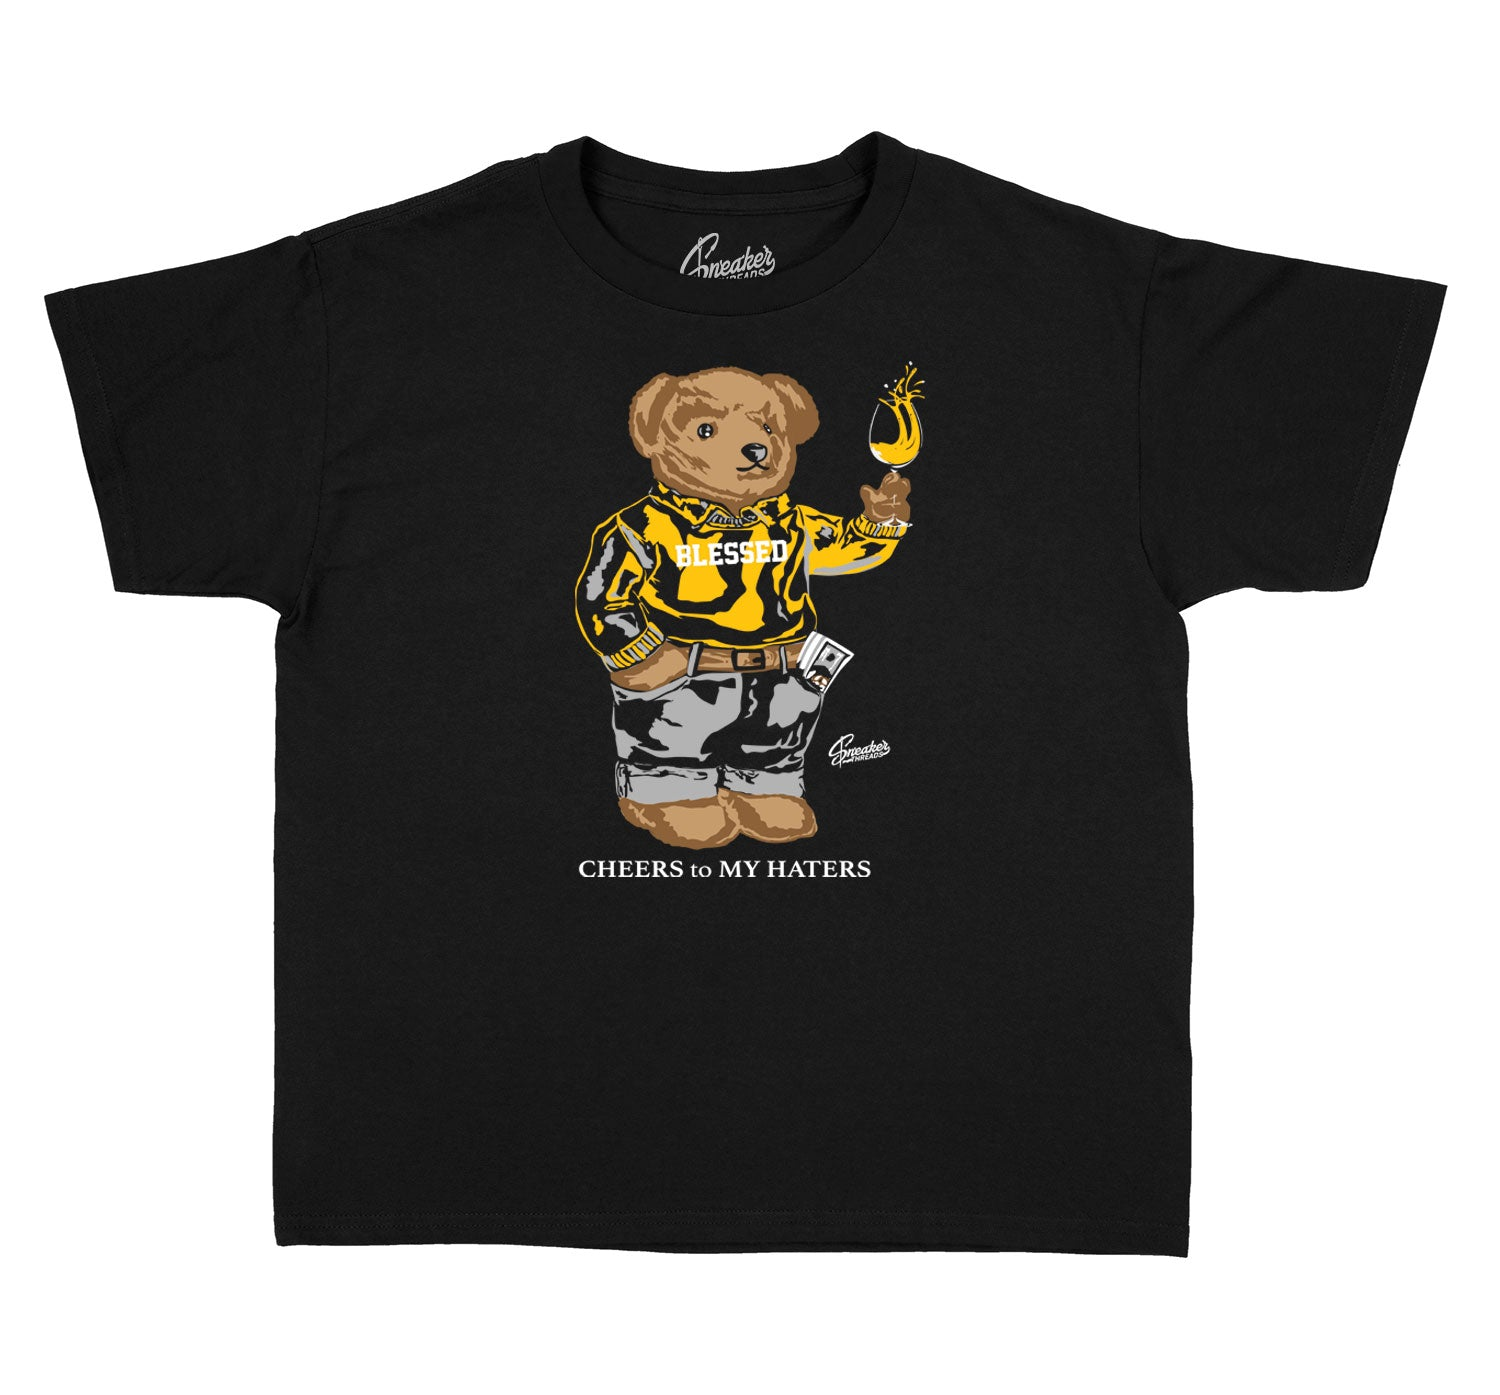 Kids Cool Grey 3 Shirt - Cheers Bear - Black